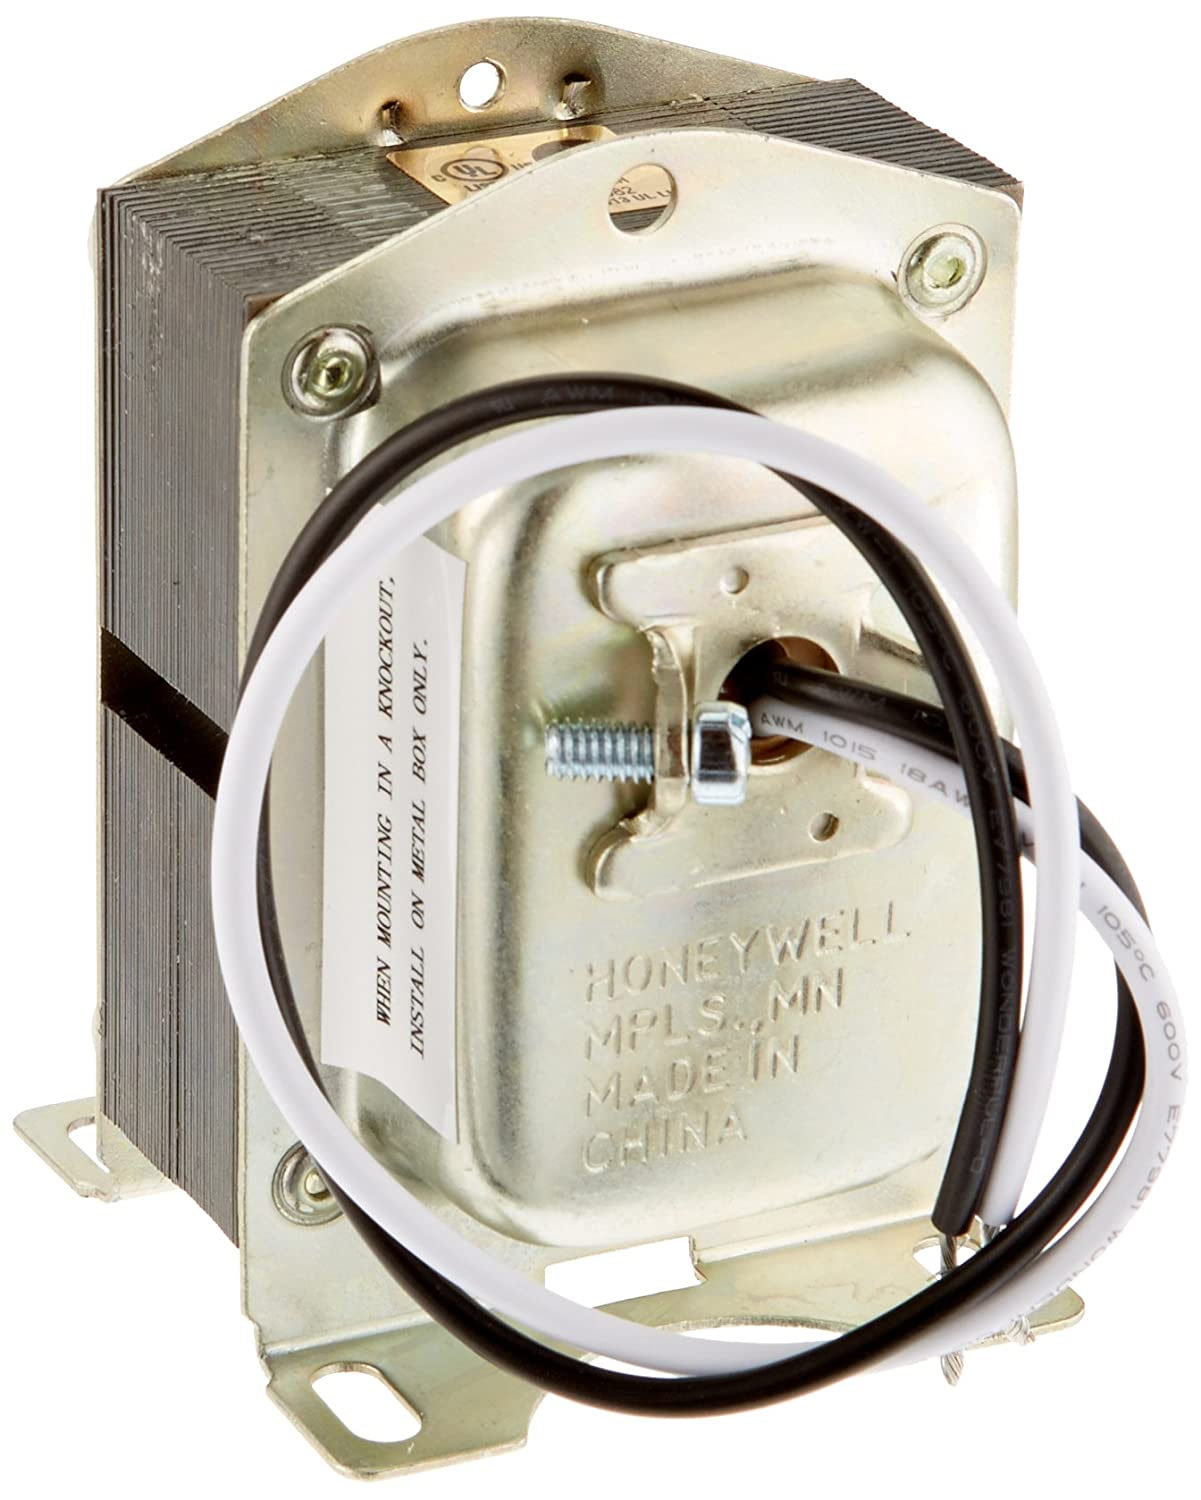 Amazon.com: Honeywell AT72D1683 120V/24V Transformer: Home Improvement